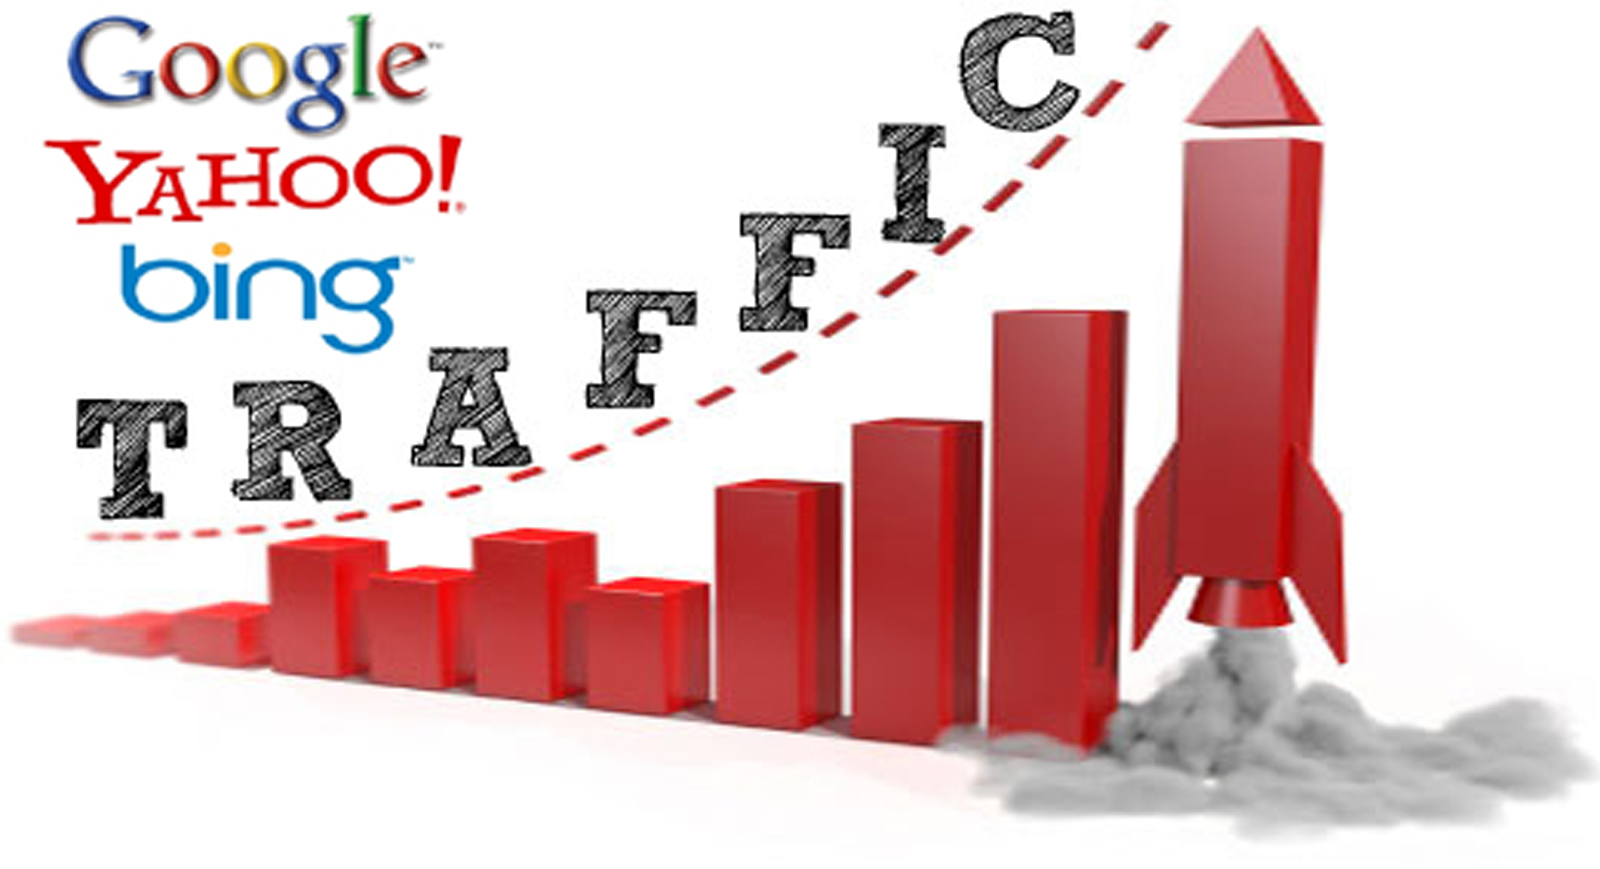 How We're Converting Our Website Traffic into Sales